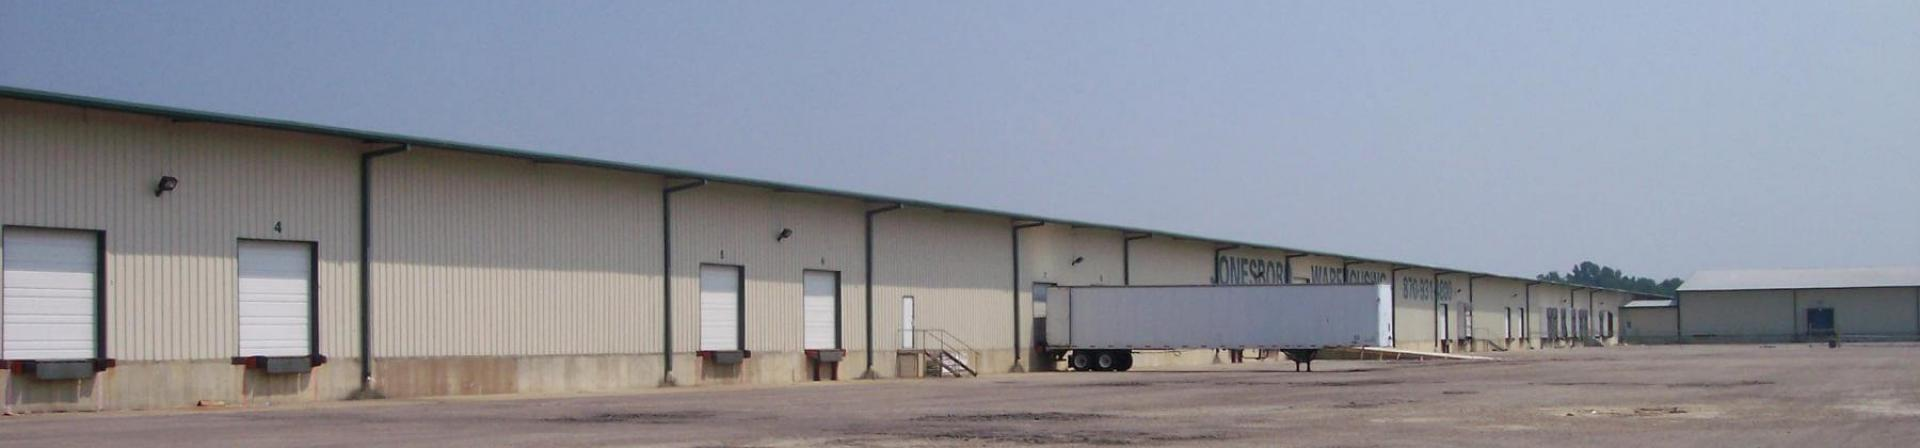 Available Building - Jonesboro Warehouse - Jonesboro, AR